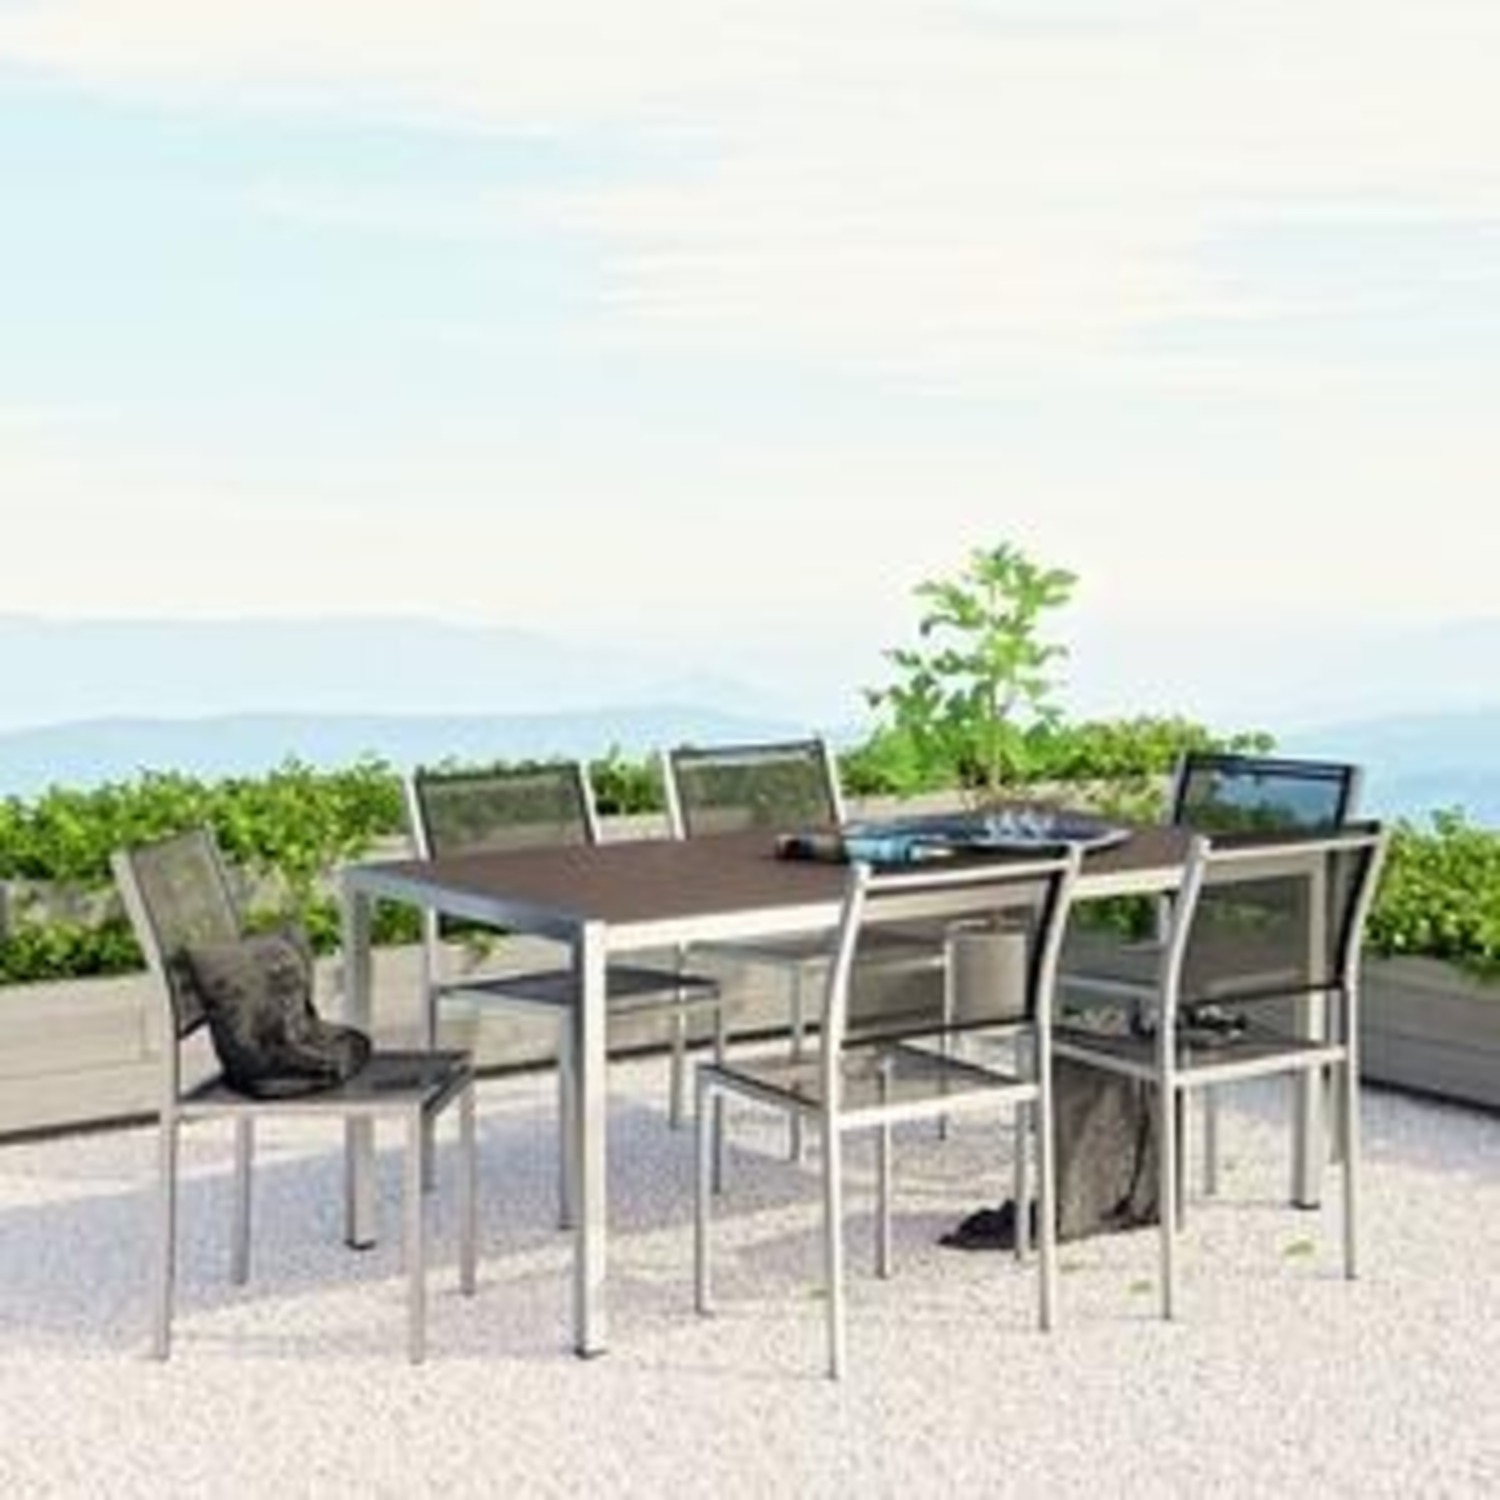 Modern 7-Piece Dining Set In Black & Silver Finish - image-6